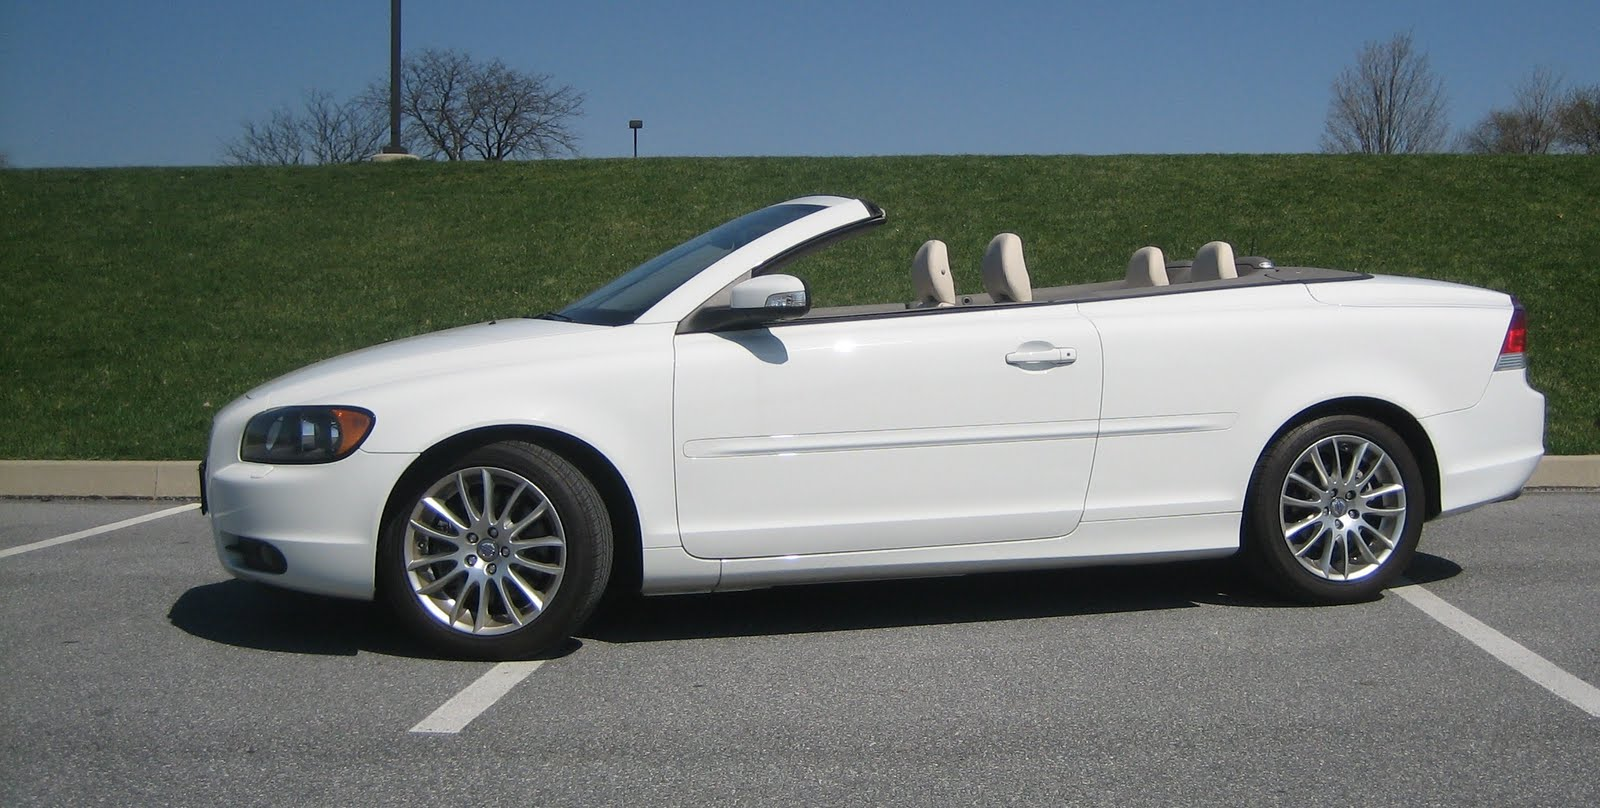 Lehman Volvo Cars: Win a Volvo C70 and support the LLS!